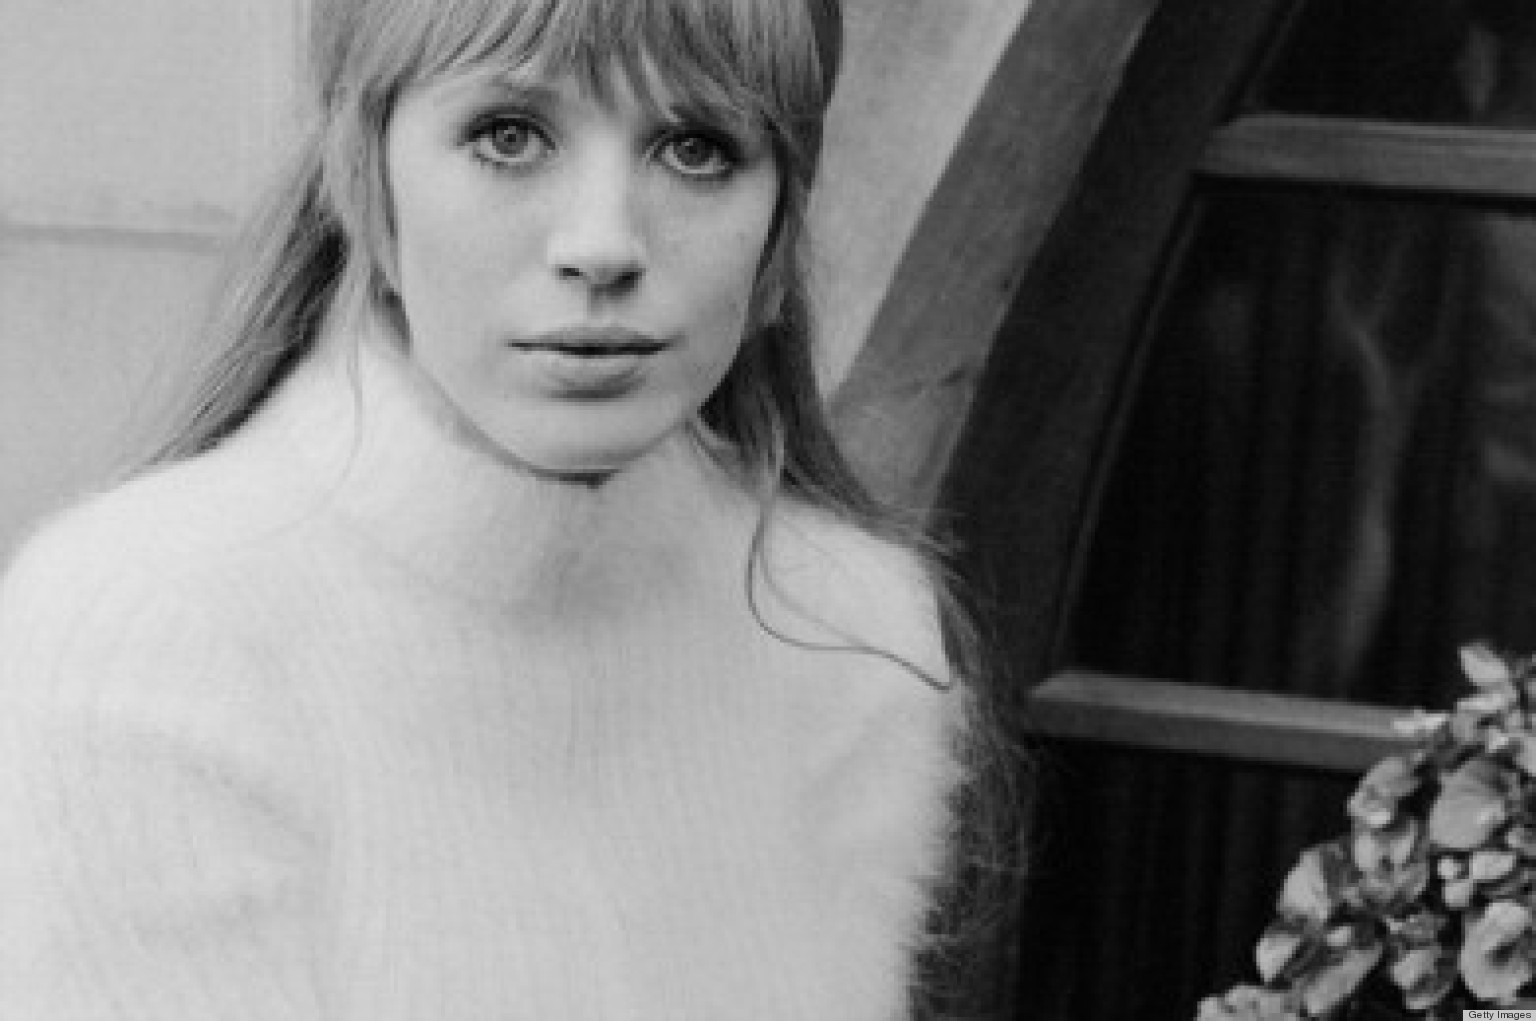 marianne faithfull song for nicomarianne faithfull -, marianne faithfull broken english, marianne faithfull mick jagger, marianne faithfull - no exit, marianne faithfull there is a ghost, marianne faithfull - sister morphine, marianne faithfull the pleasure song, marianne faithfull википедия, marianne faithfull love in a mist, marianne faithfull - this little bird, marianne faithfull sleep, marianne faithfull - guilt, marianne faithfull song for nico, marianne faithfull sacher masoch, marianne faithfull love hates, marianne faithfull come and stay with me, marianne faithfull – as tears go by, marianne faithfull as tears, marianne faithfull - so sad, marianne faithfull strange